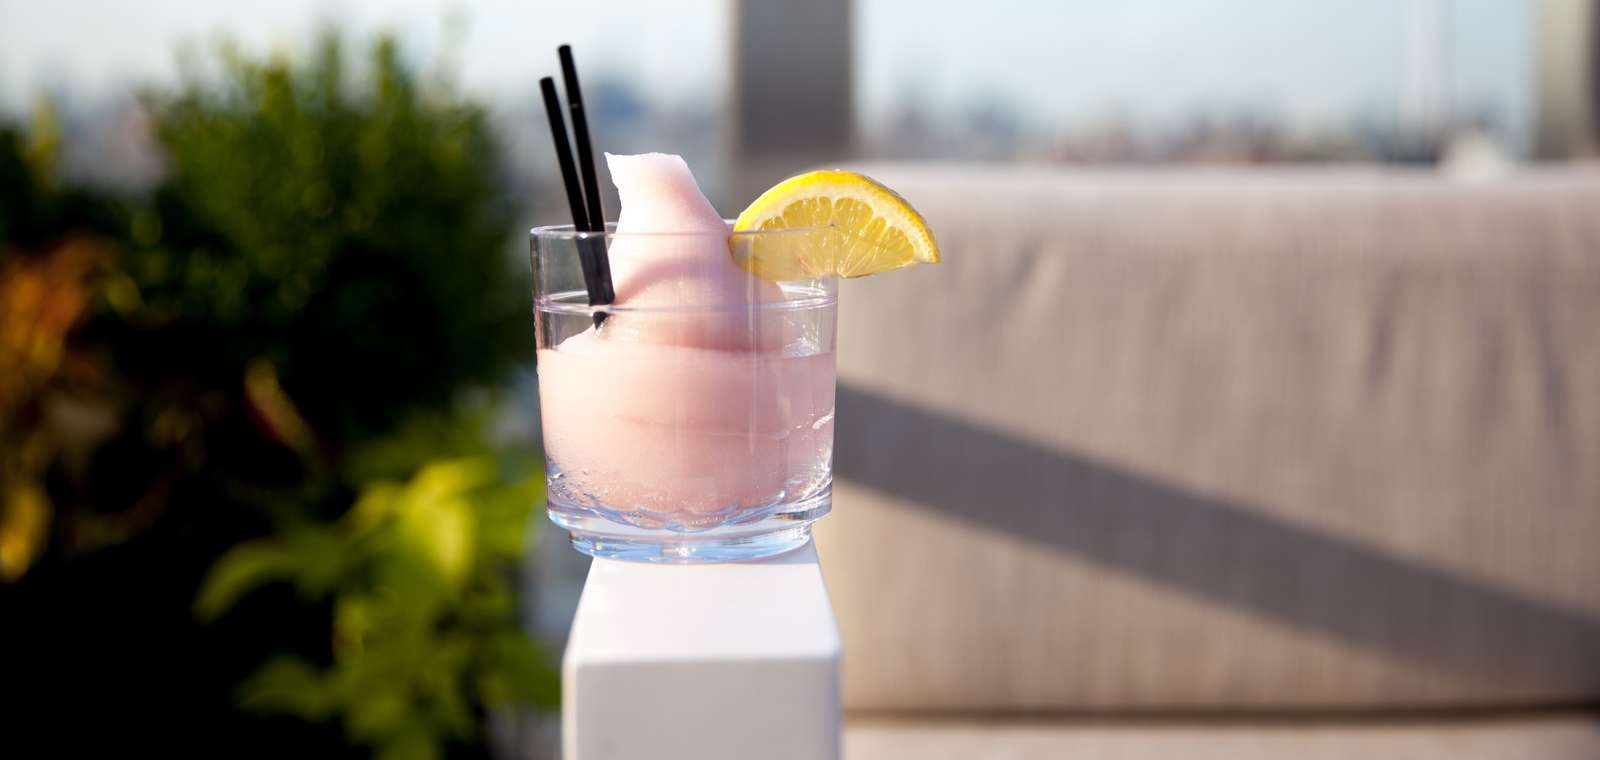 Frose Cocktail at The Crown Rooftop Bar in NYC